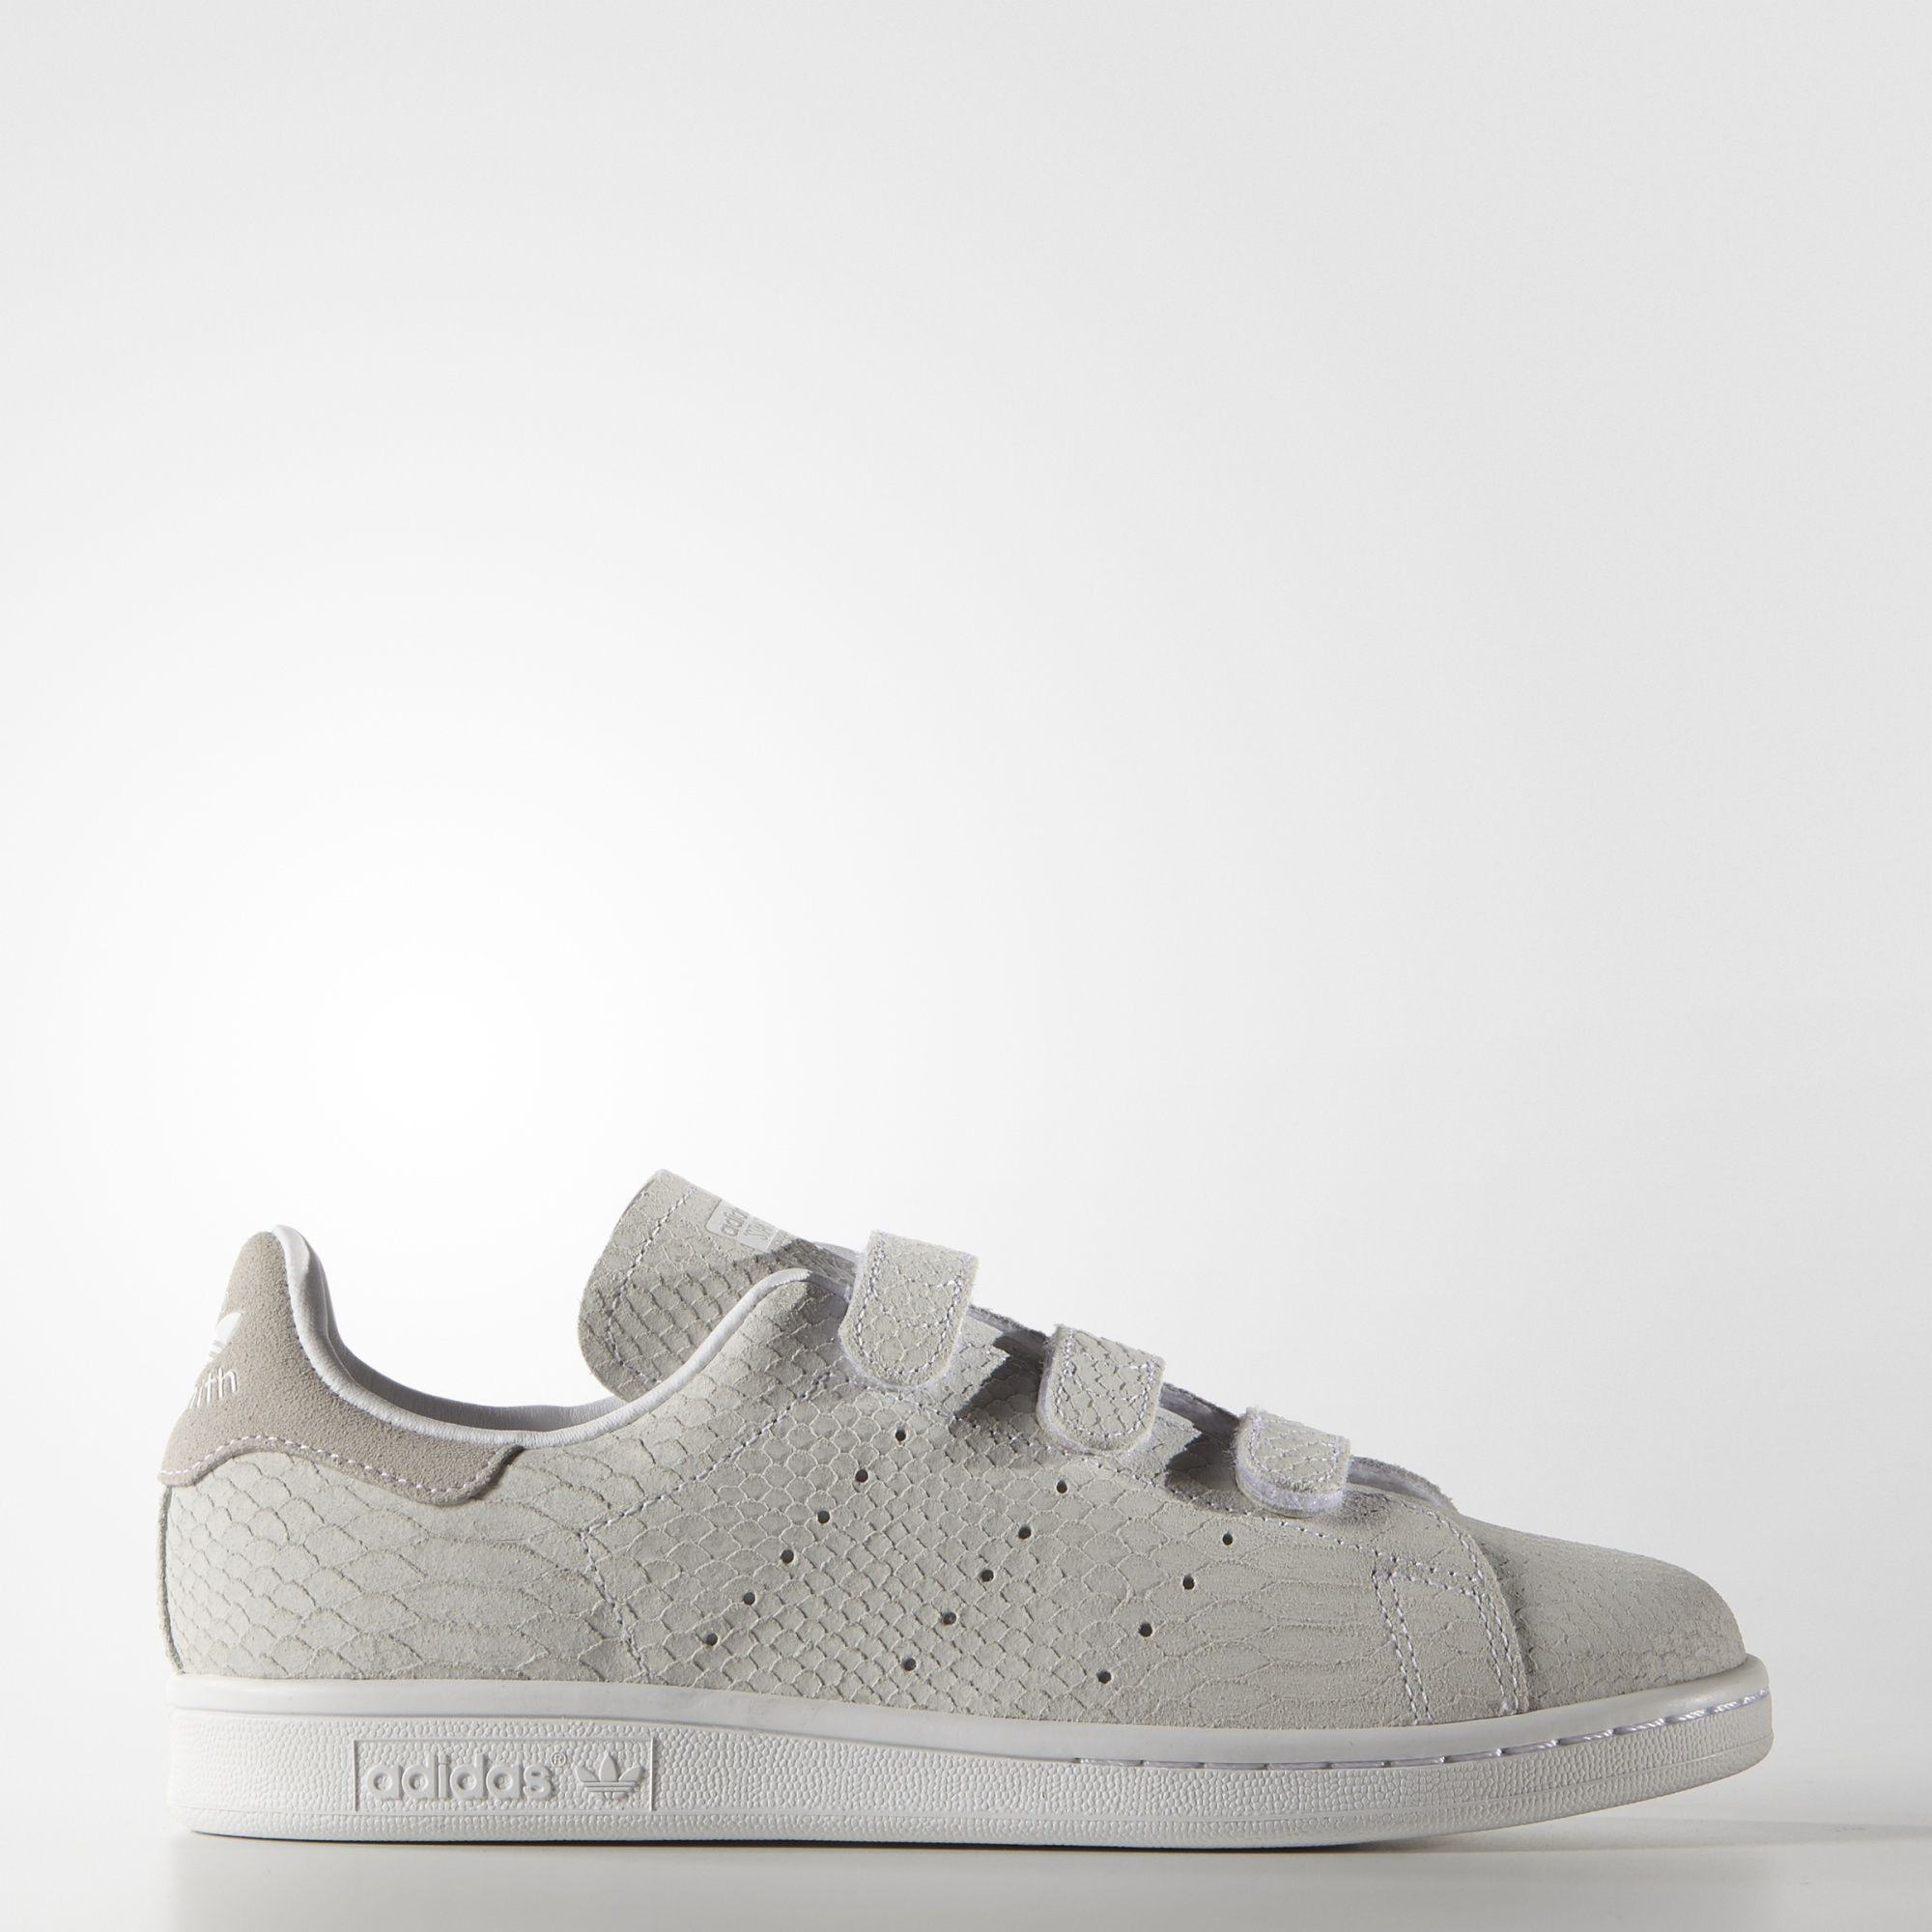 adidas Stan Smith Shoes - White | adidas MLT